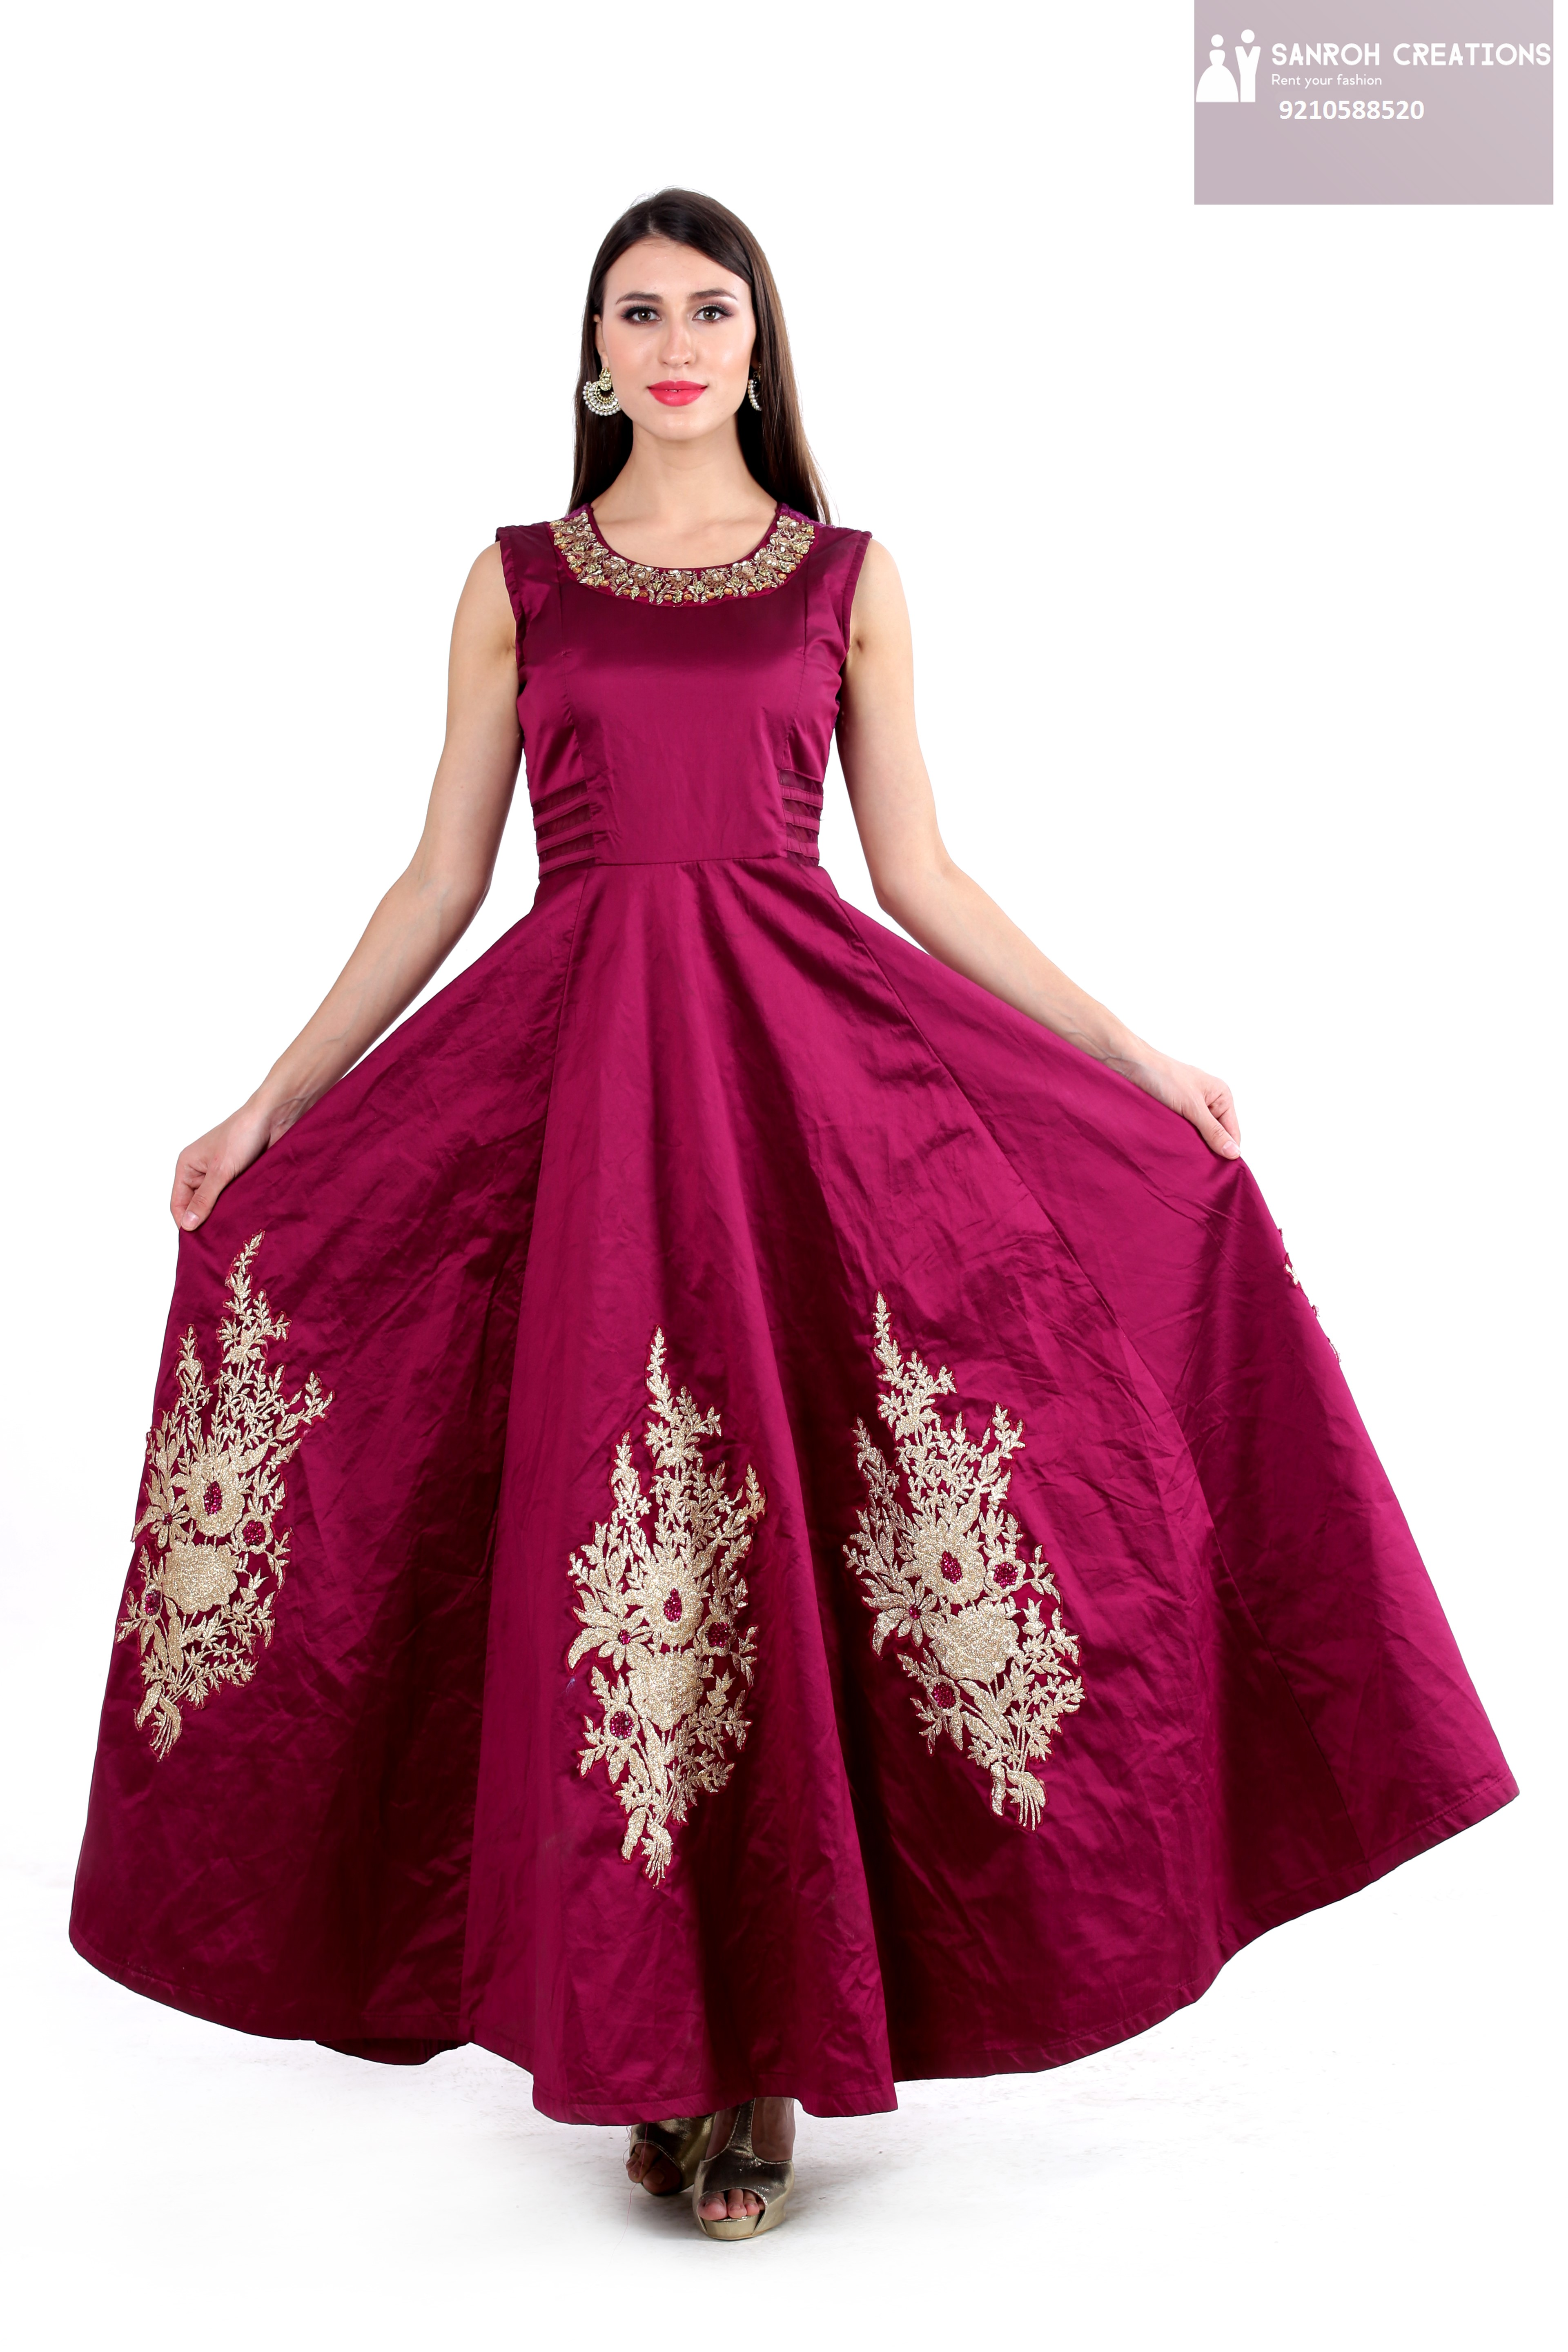 womens fancy dresses on rent in Gurgaon